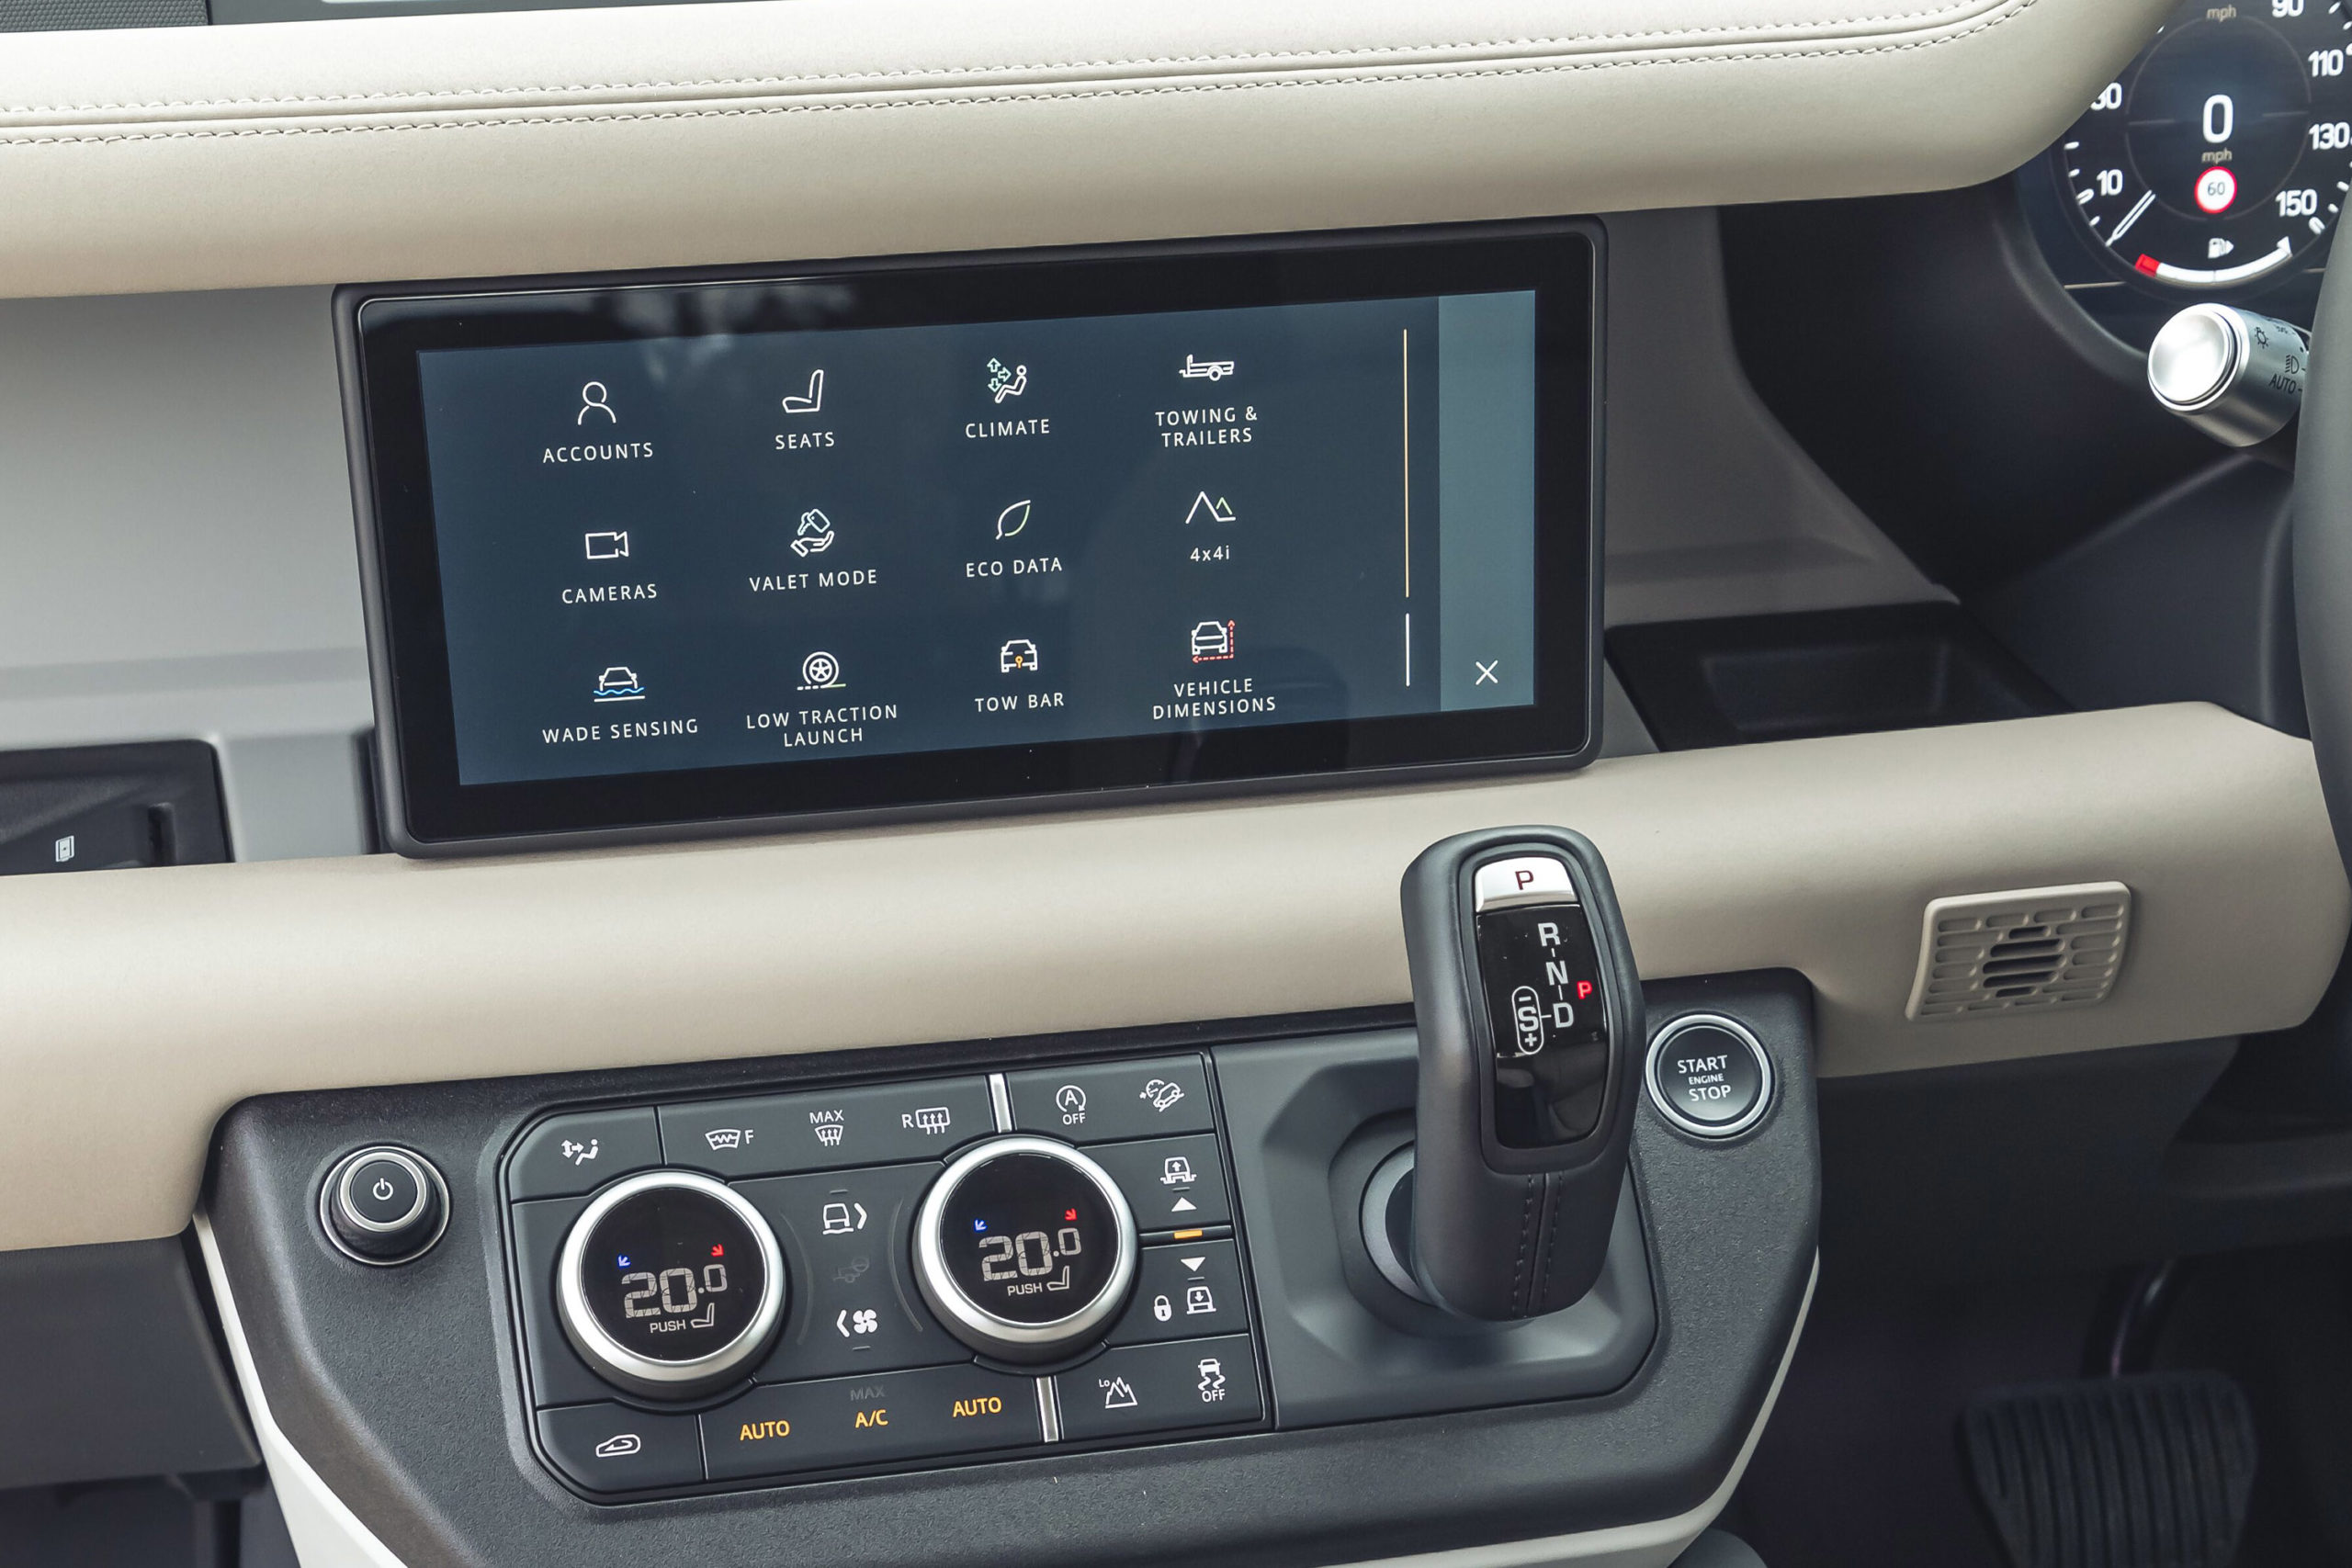 2020-Land-Rover-Defender-infotainment